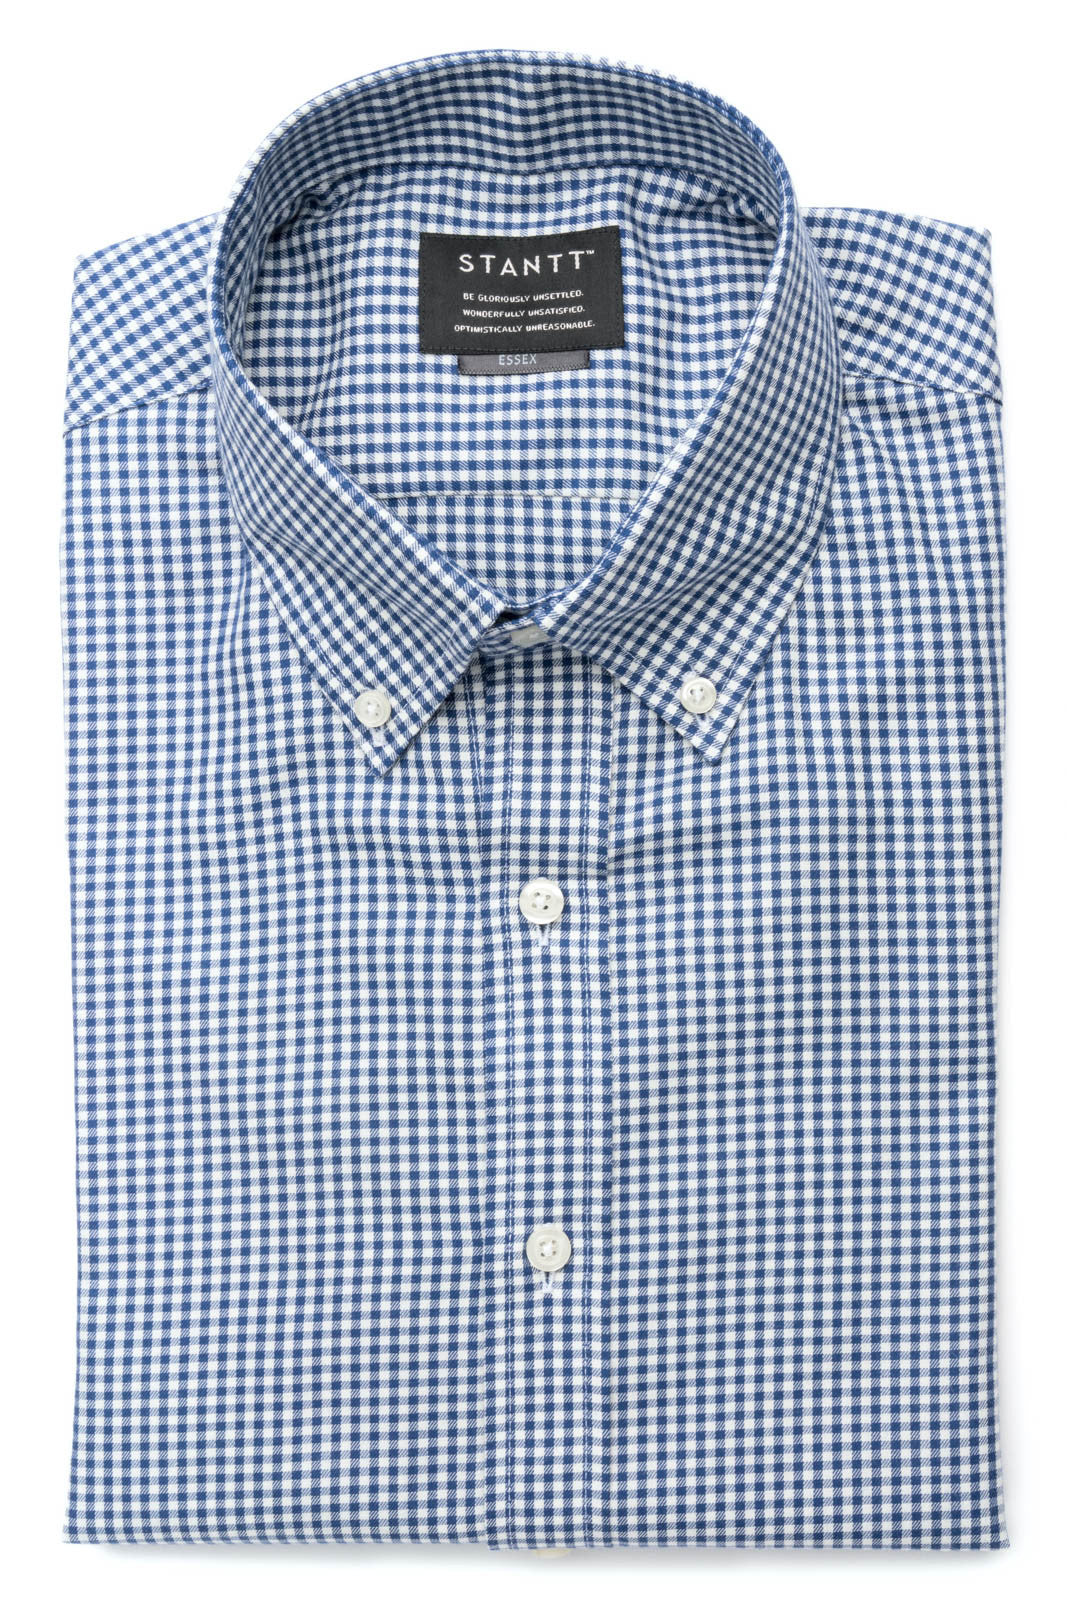 Navy Mini Gingham: Semi-Spread Collar, Barrel Cuff